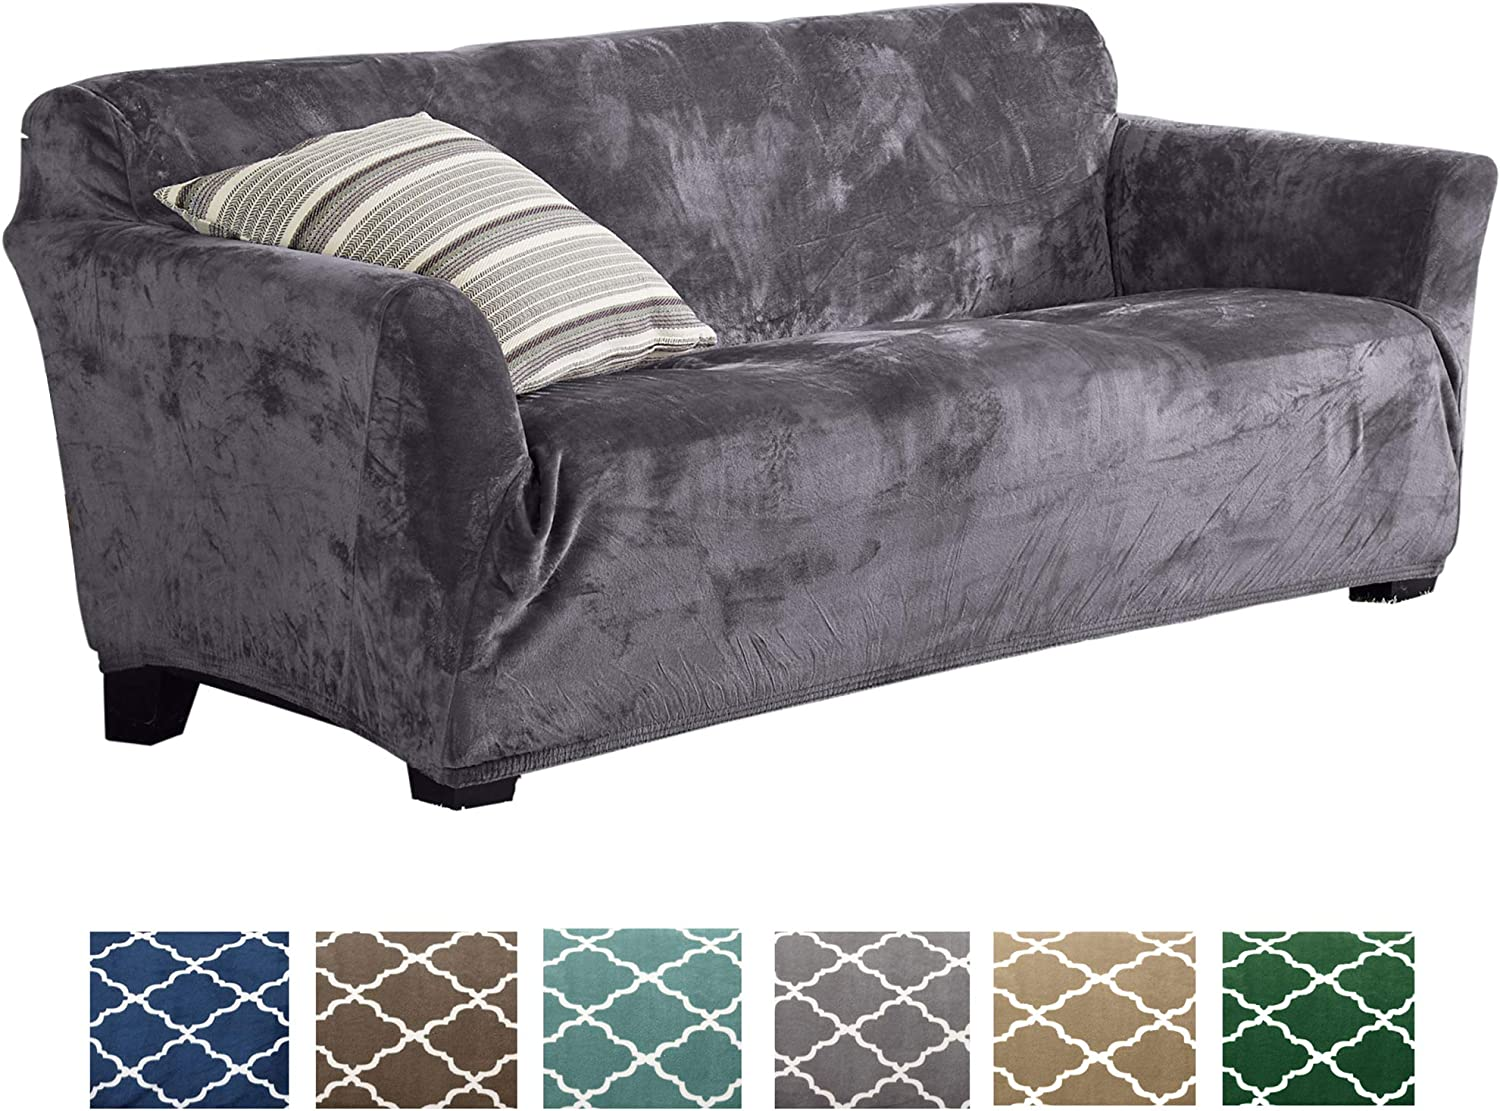 Form Fit, Slip Resistant, Stylish Furniture Shield Predector Featuring Velvet Plush Fabric Magnolia Collection Strapless Slipcover (Sofa, Grey)